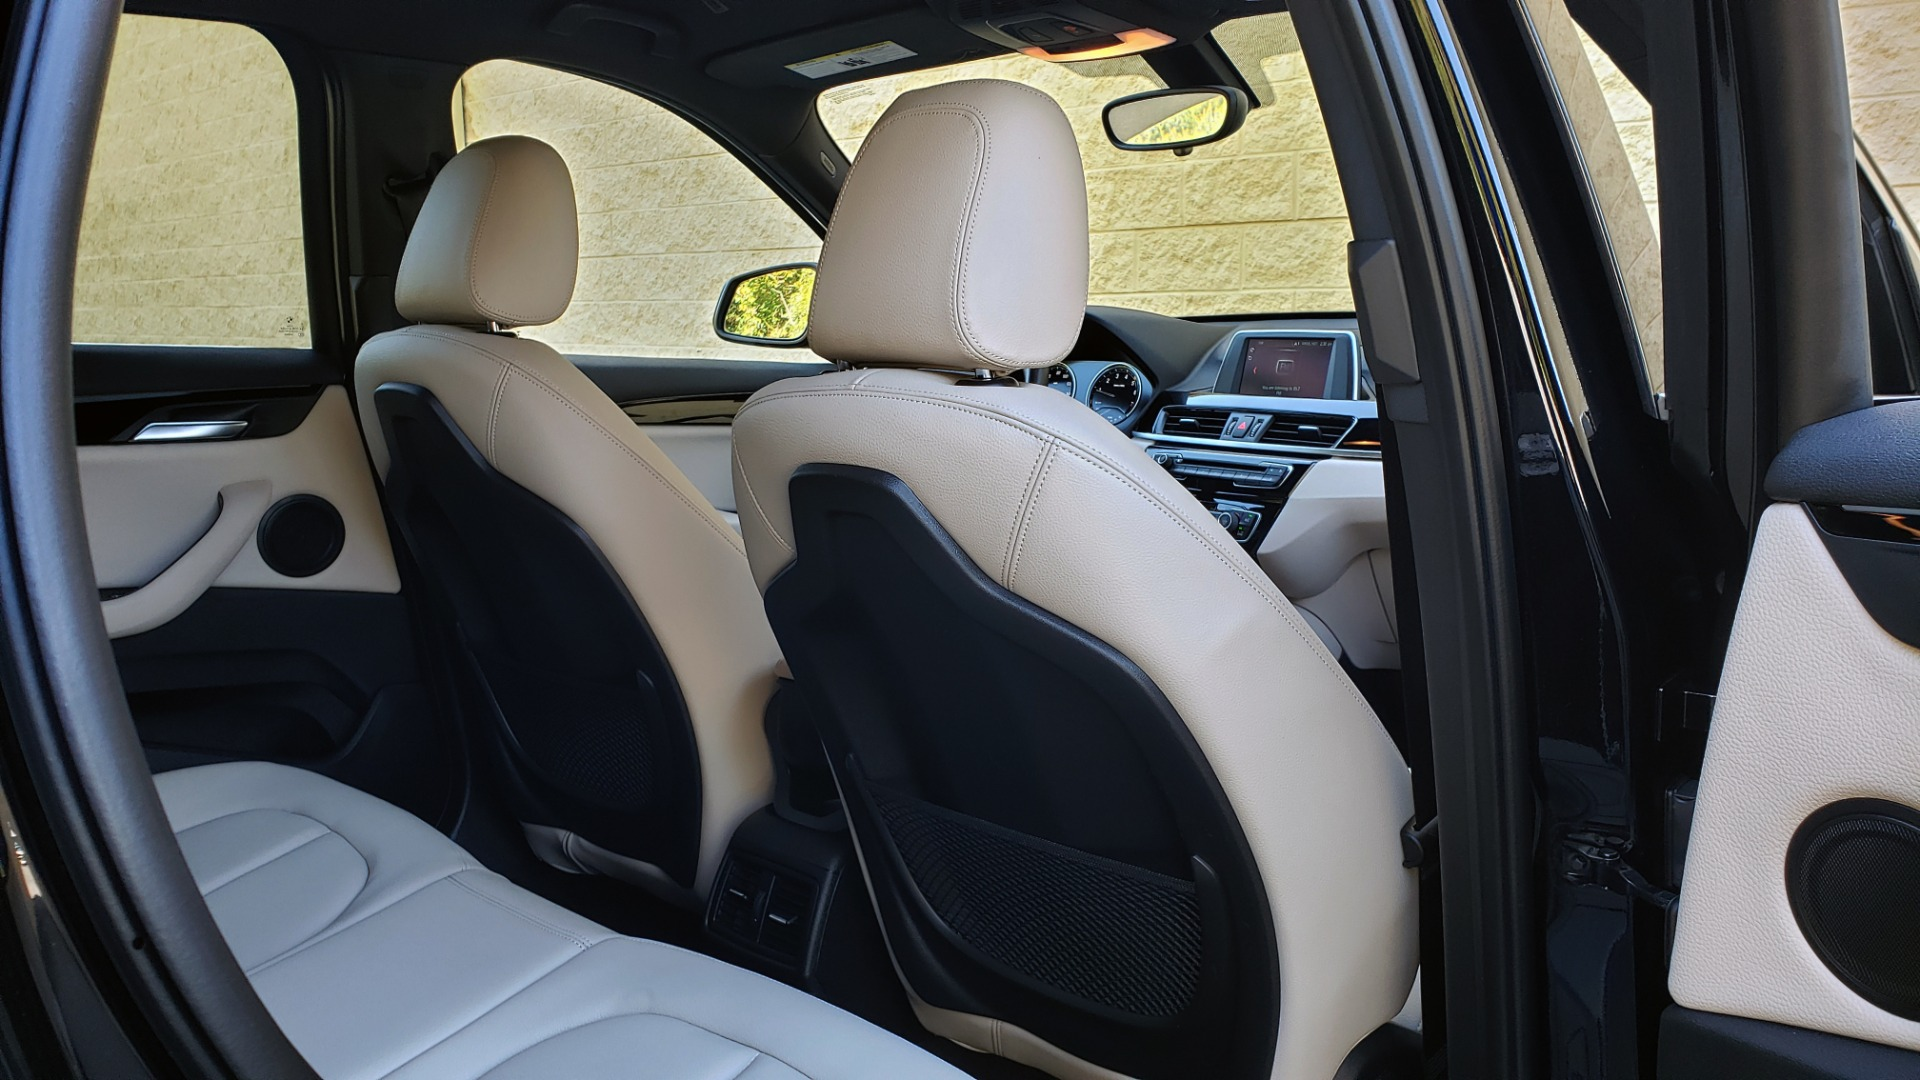 Used 2018 BMW X1 SDRIVE28I / HEATED SEATS / 4-CYL / 8-SPD AUTO / REARVIEW for sale Sold at Formula Imports in Charlotte NC 28227 79